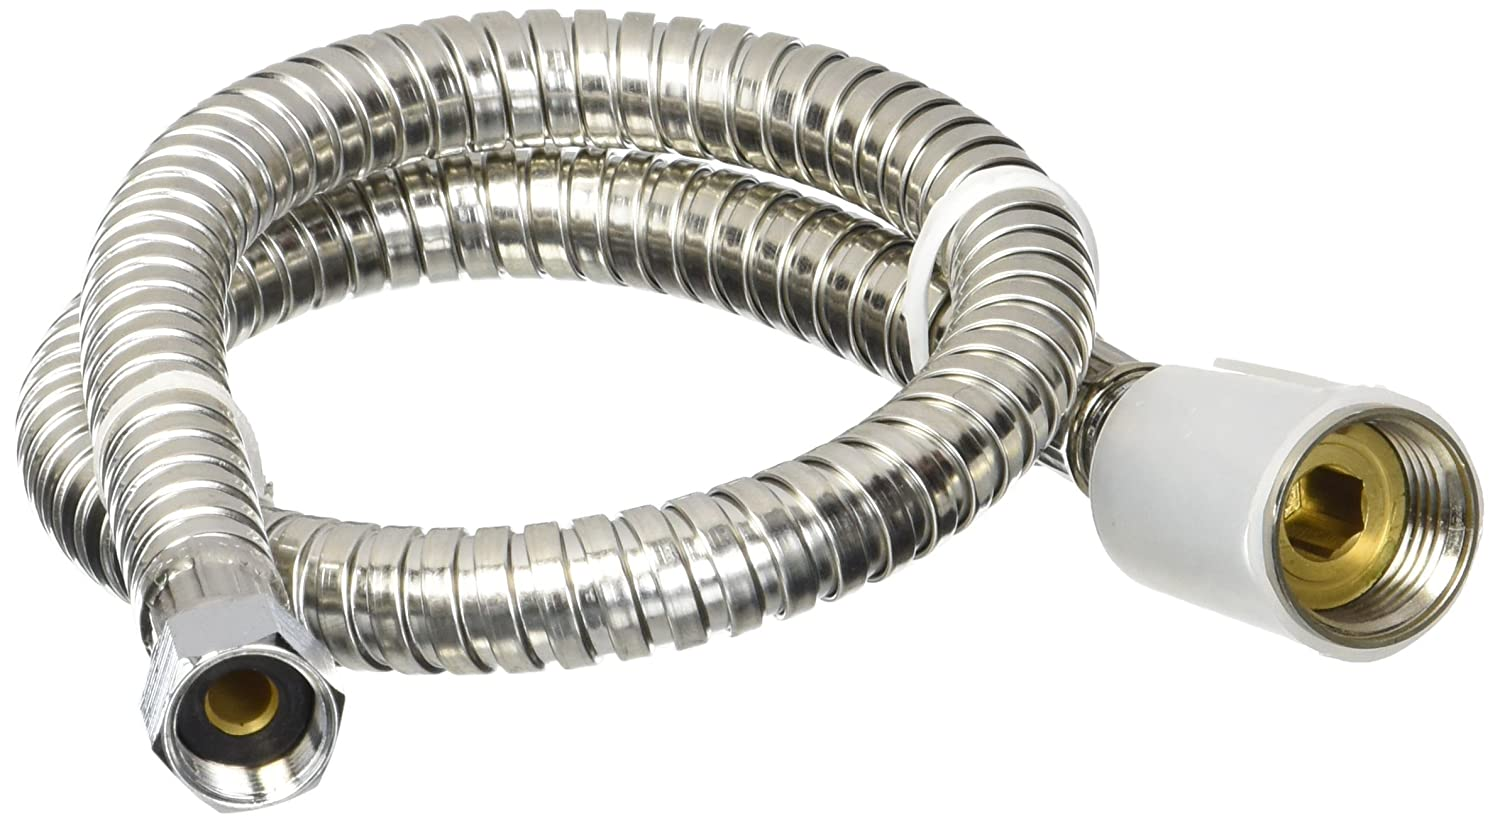 Danze DA664209NBN Stainless Steel Braided Pre-Rinse Hose for Kitchen Faucet, 25-Inch, Brushed Nickel